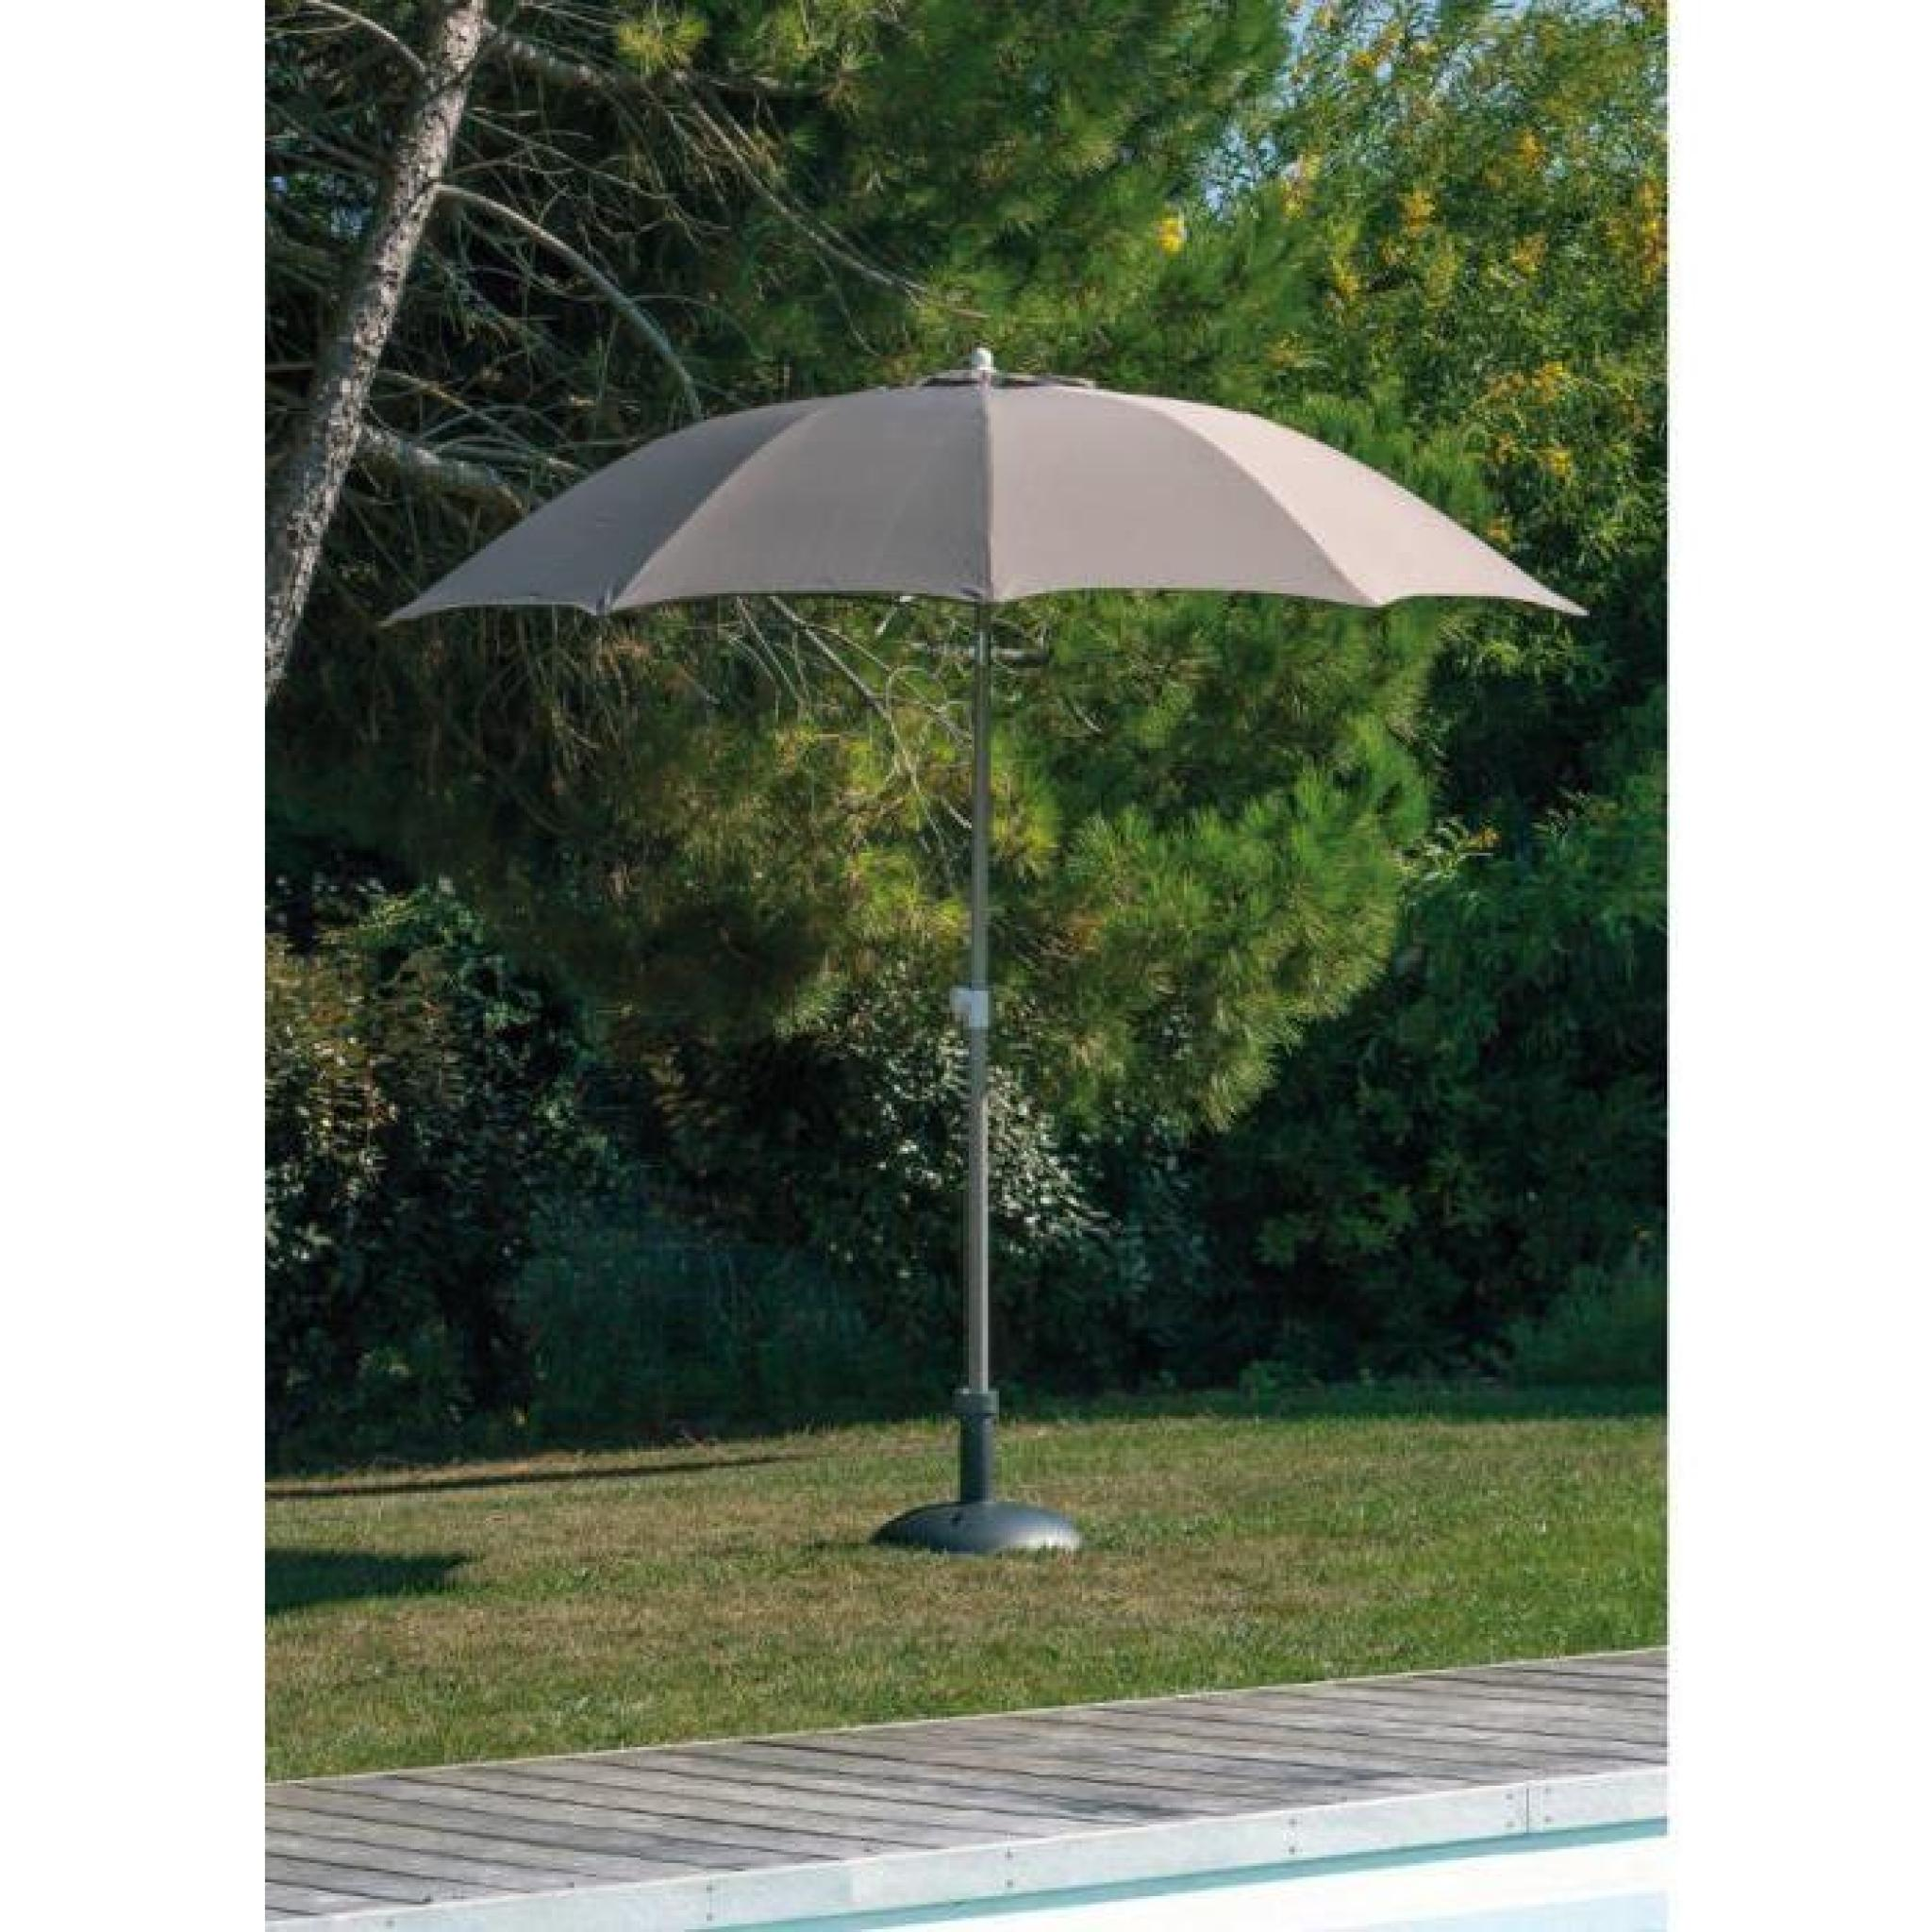 parasol-rond-inclinable-aluminium-2-70m-4 Impressionnant De Parasol Rectangulaire Inclinable